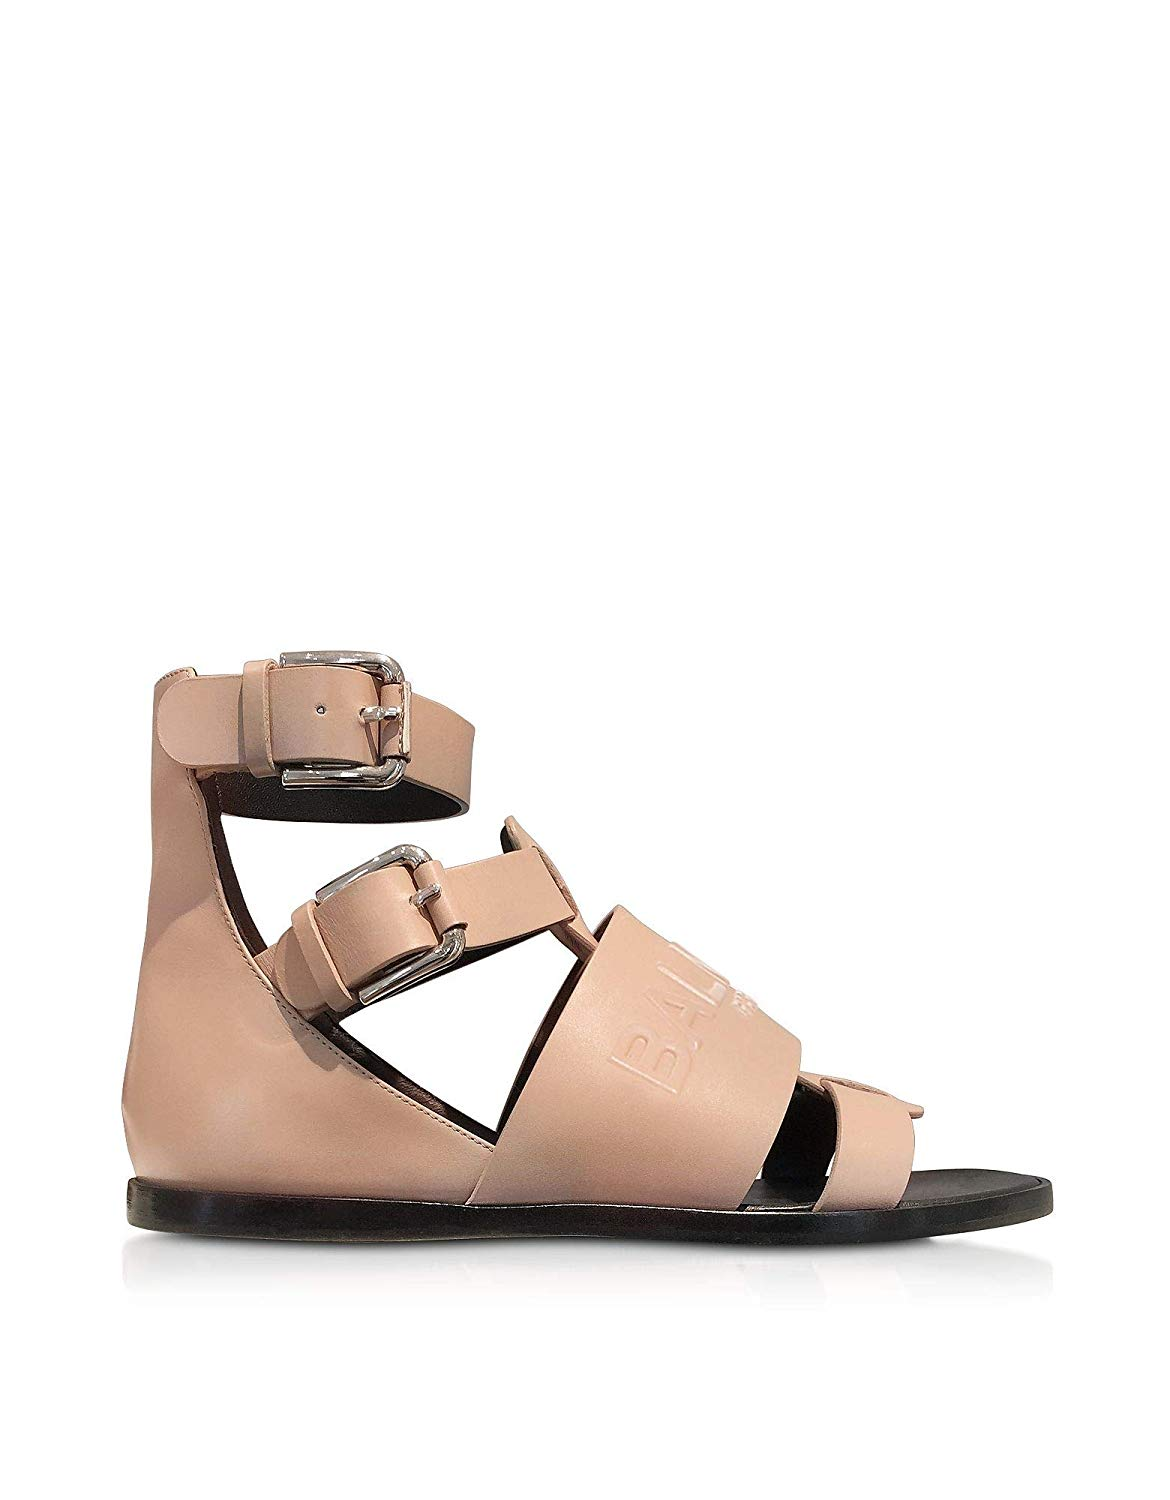 Balmain S8FC156PGDB1021 Pink Leather Sandals 02